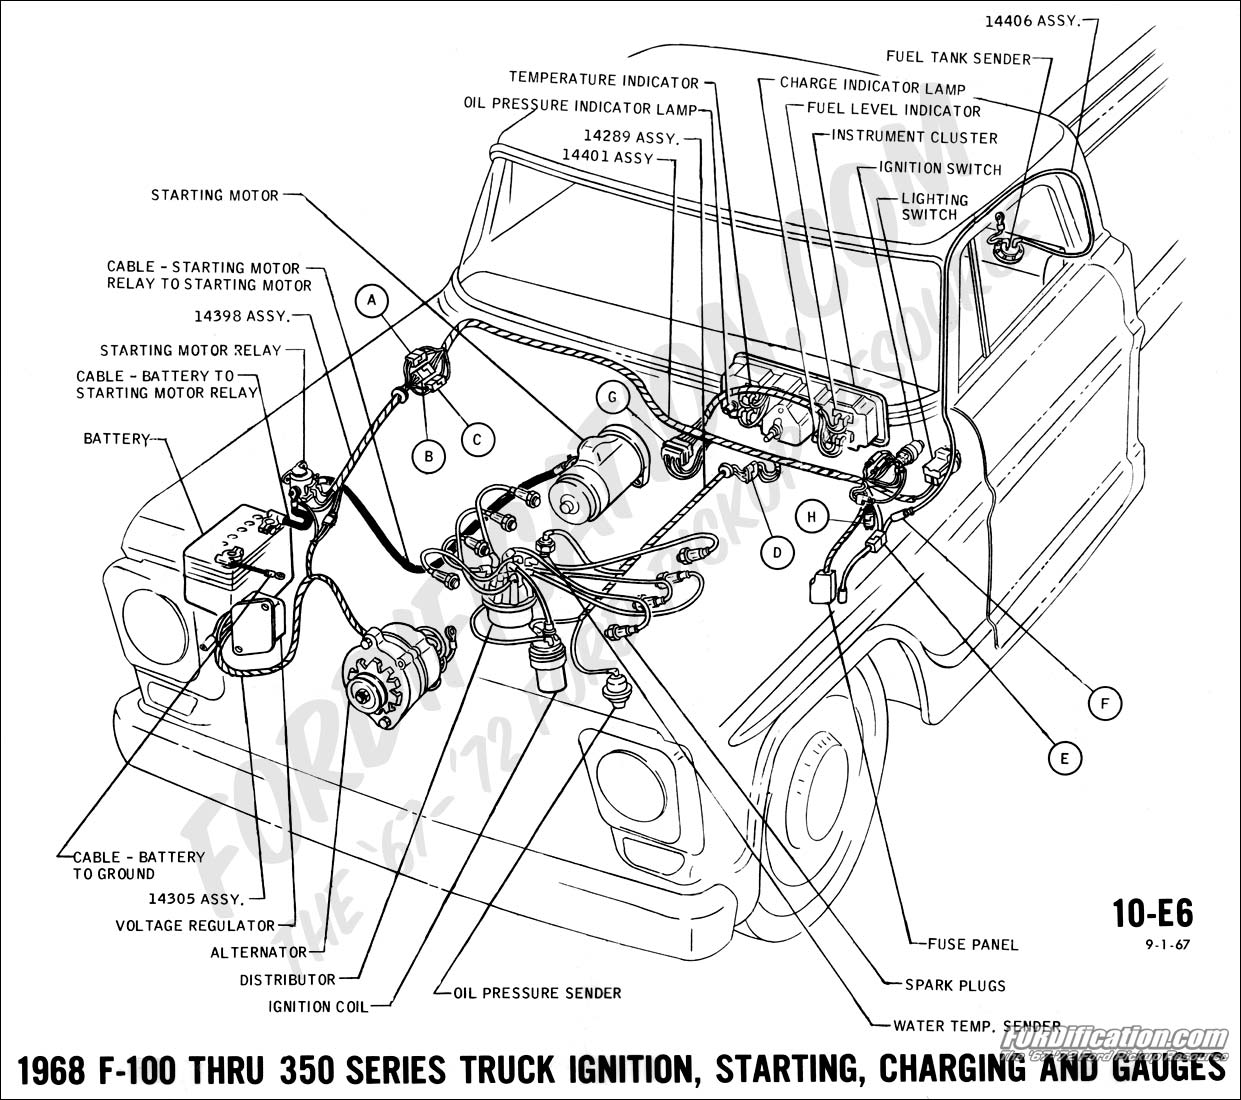 Chevy 350 Wire Harness Wiring Library Diagram As Well Caprice Engine On 92 1968 F 100 Thru Ignition Starting Charging And Gauges